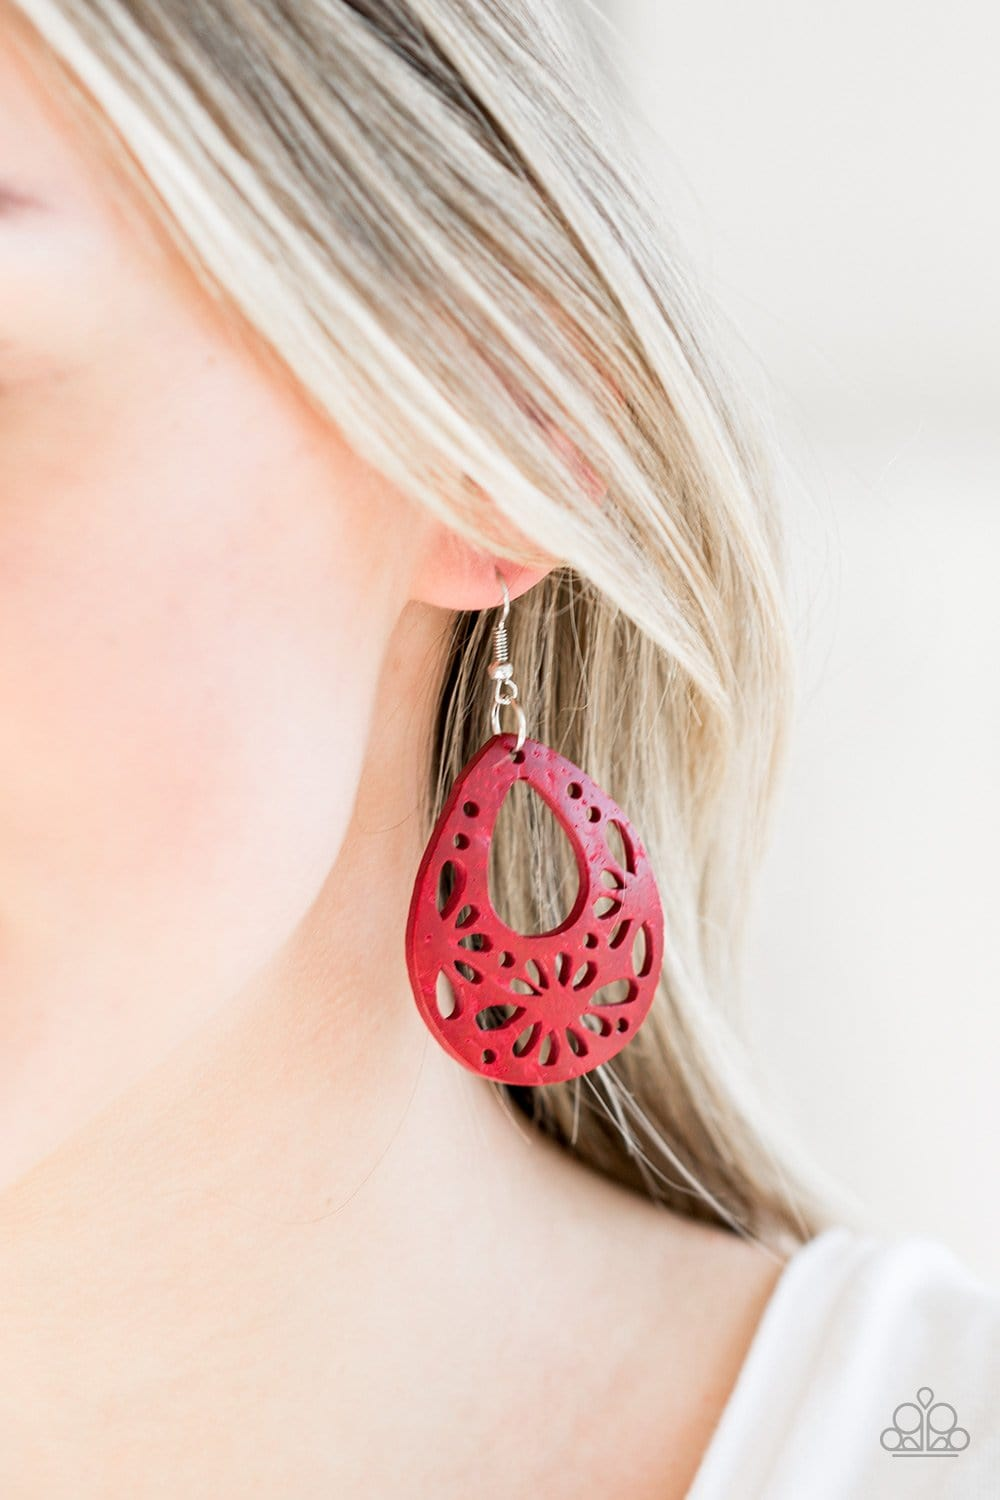 Merrily Marooned - Red: Paparazzi Accessories - Jewels N' Thingz Boutique